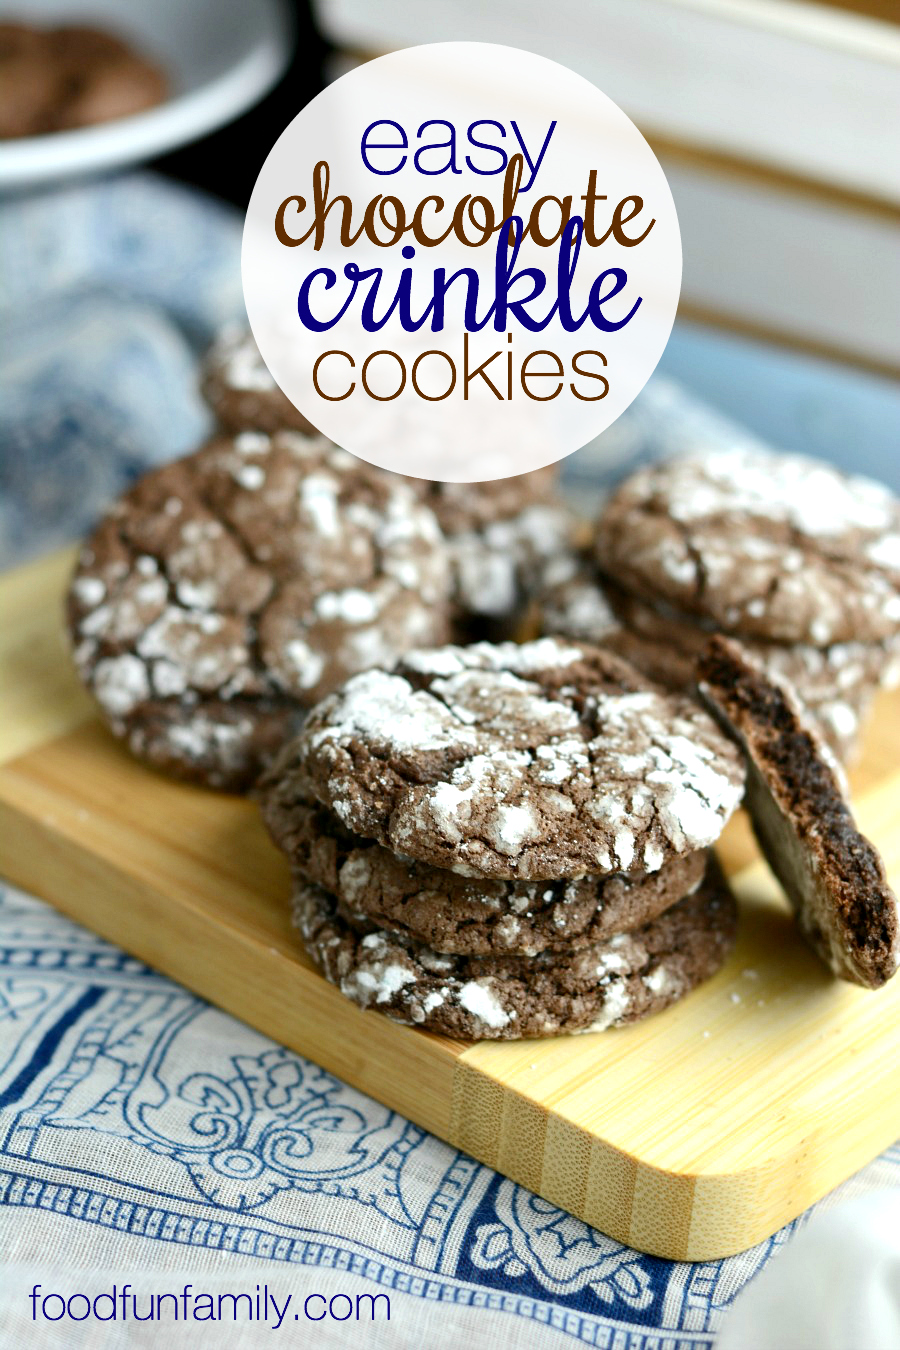 These easy chocolate crinkle cookies from Food Fun Family couldn't be easier to make. This recipe only calls for 4 simple ingredients, but they turn out moist and delicious every time!